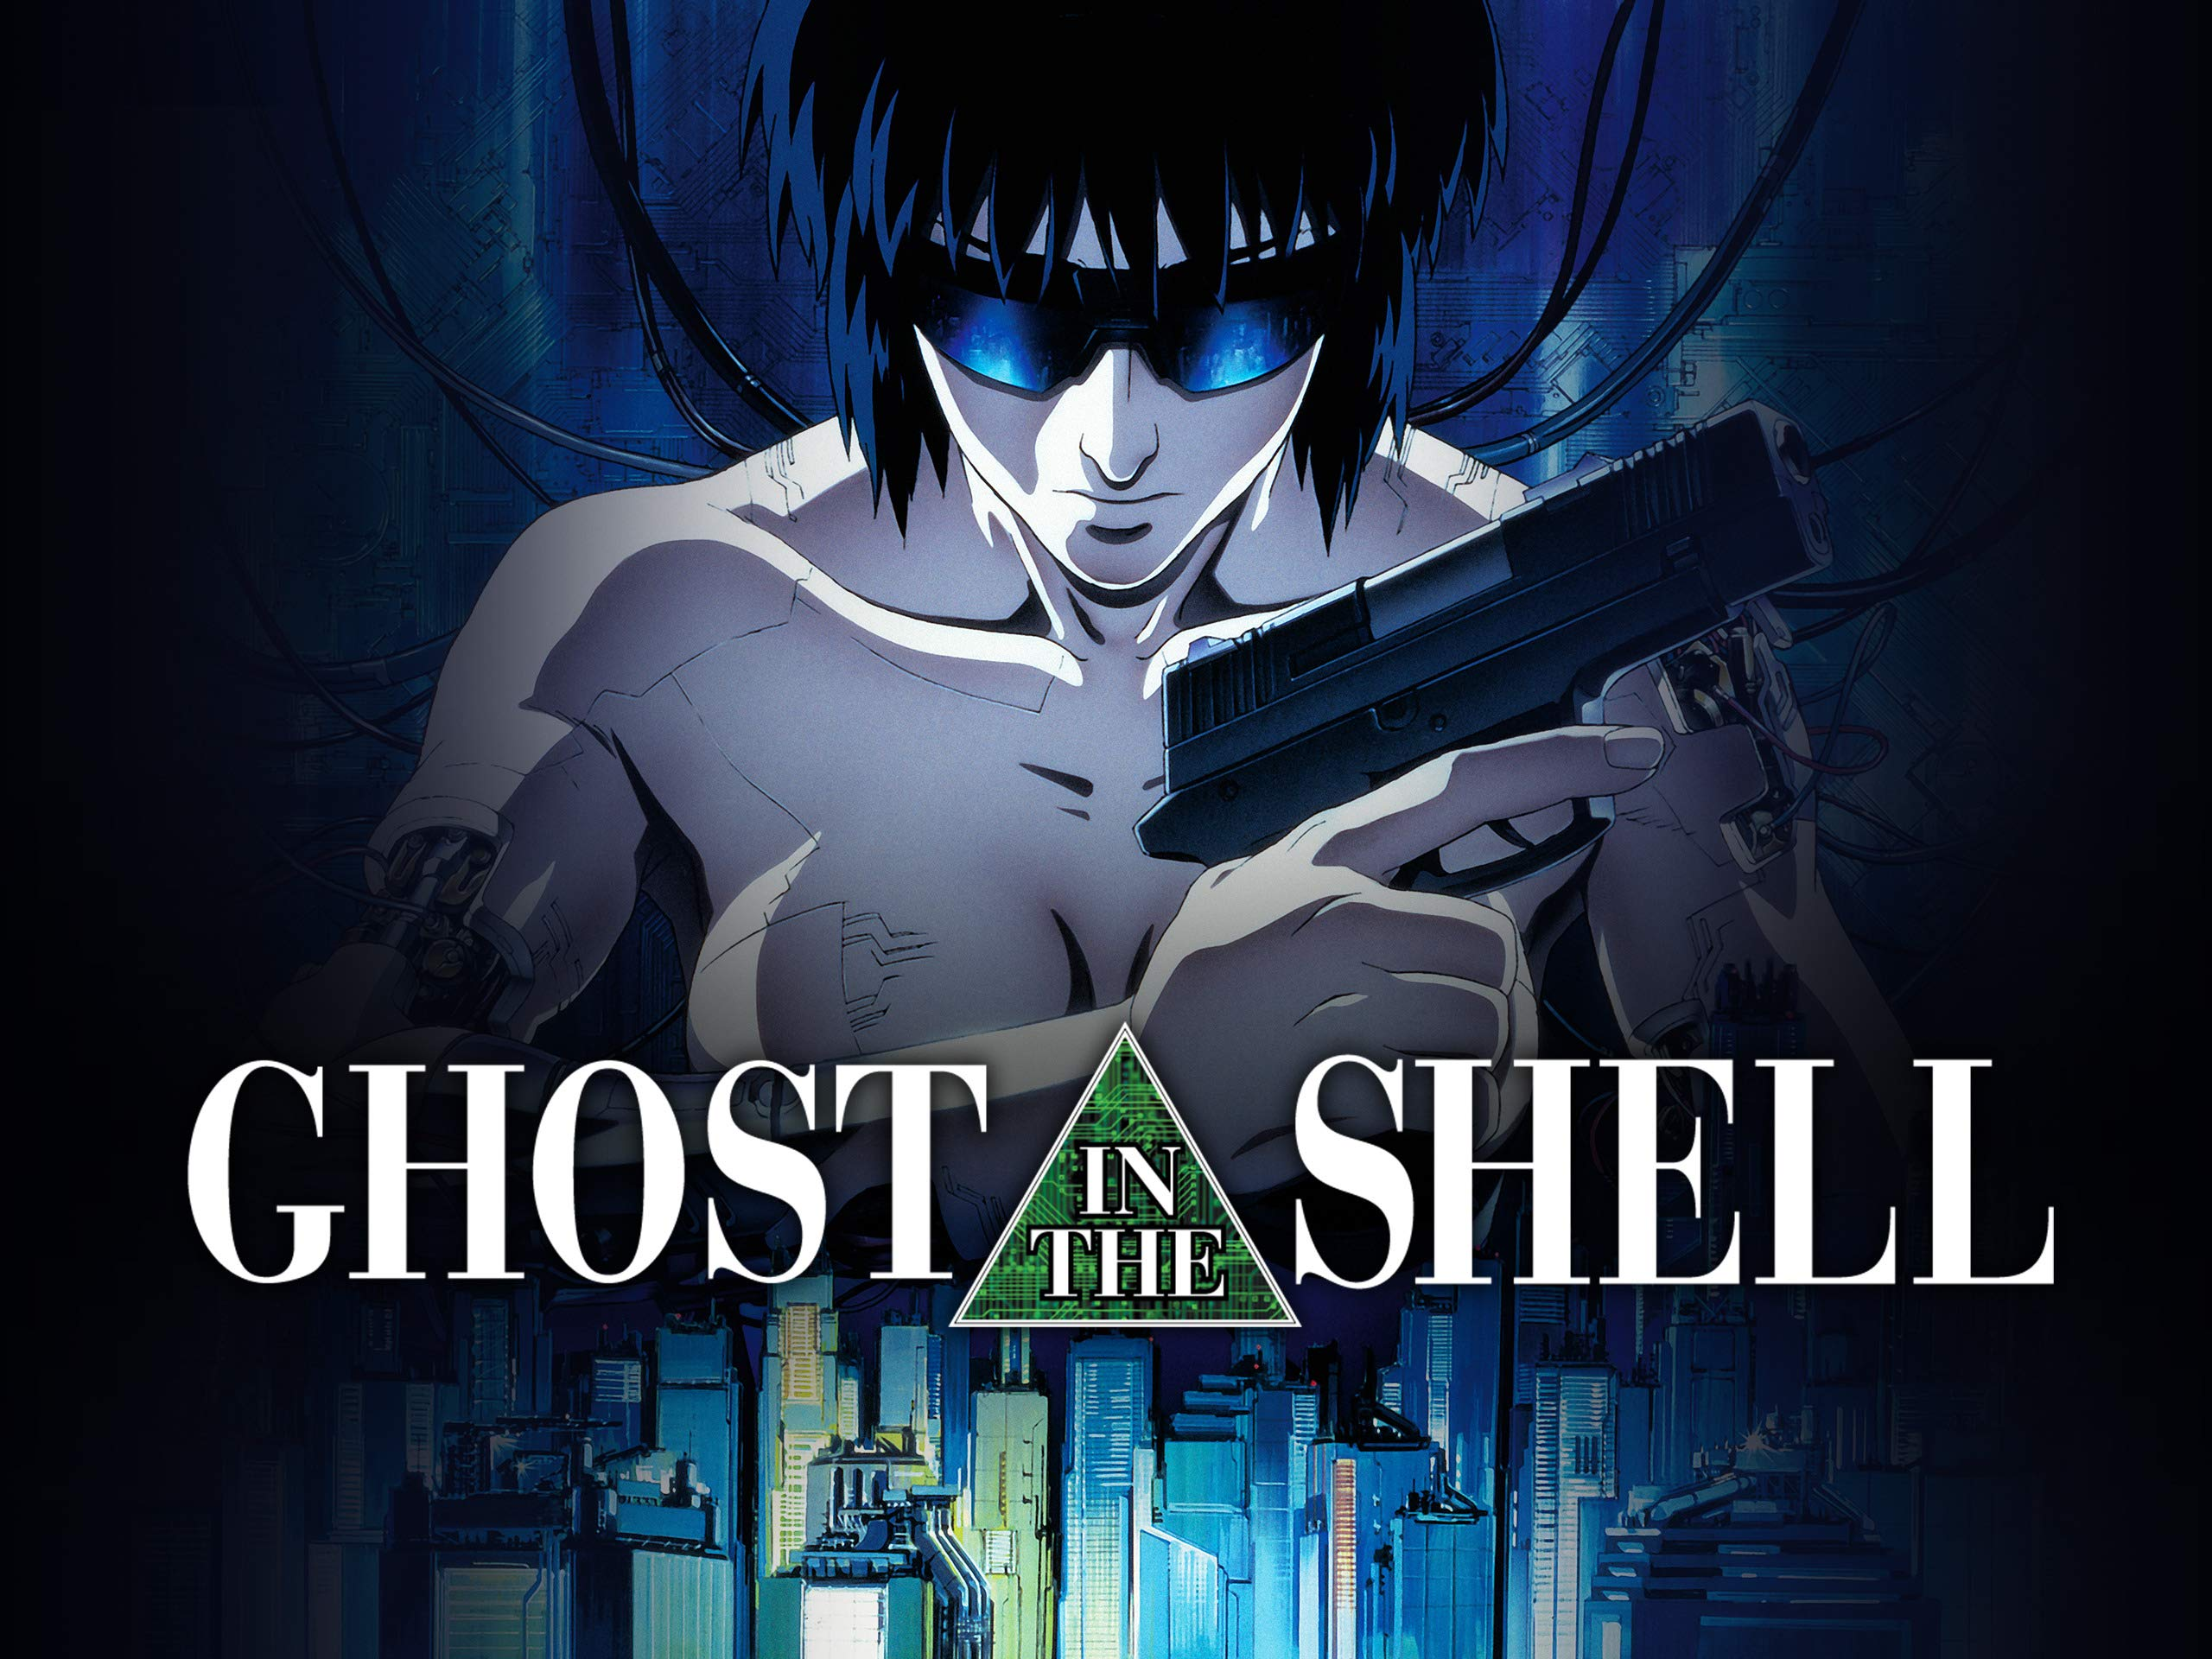 Watch Ghost In The Shell 2 0 2008 Redux Prime Video